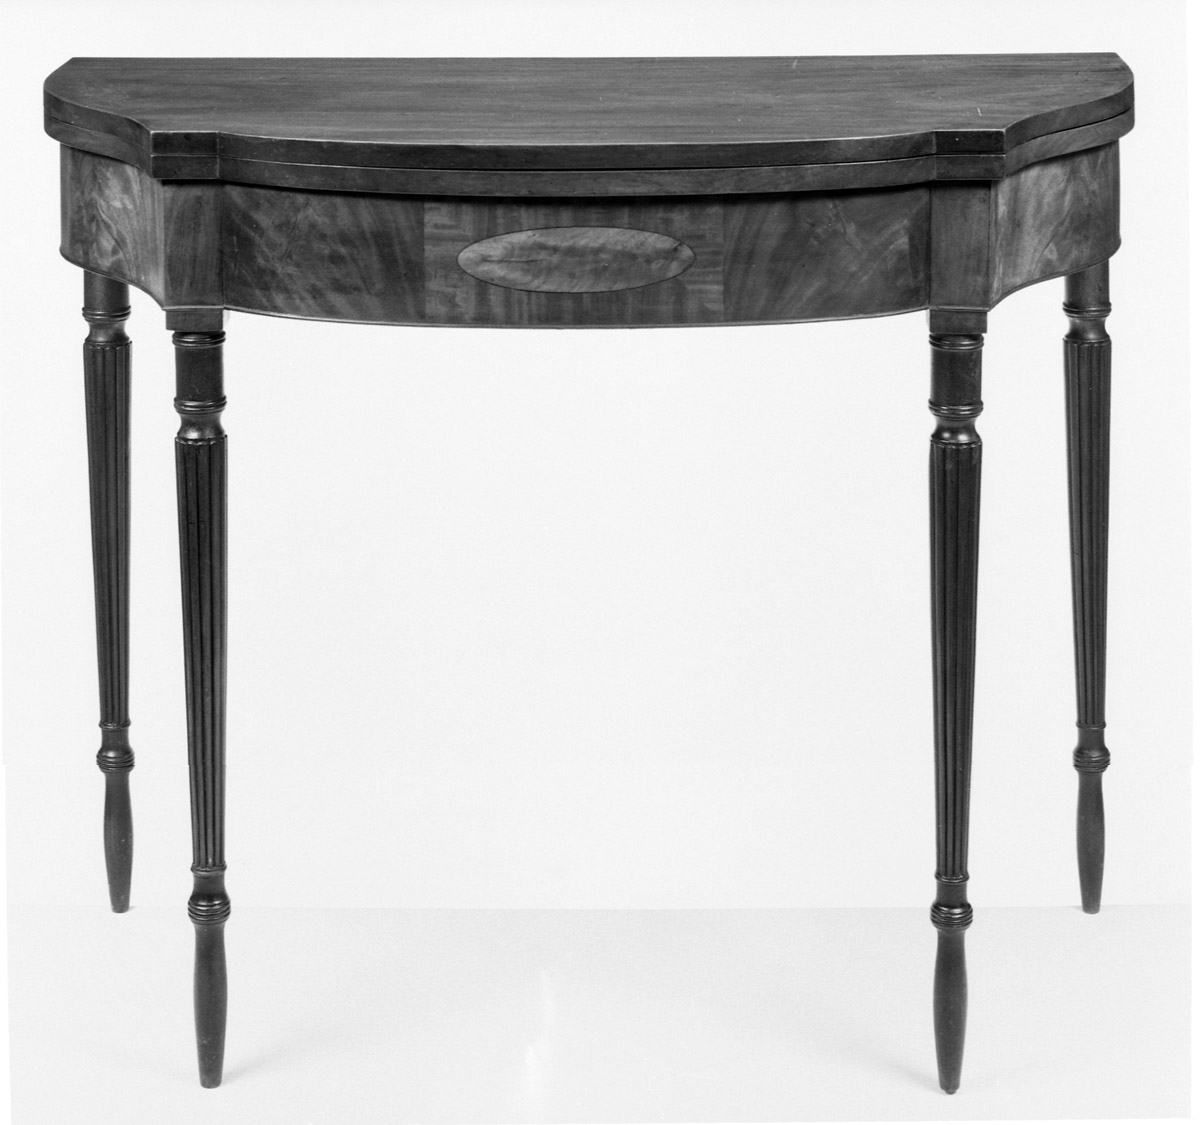 1957.0860 Table, Card table